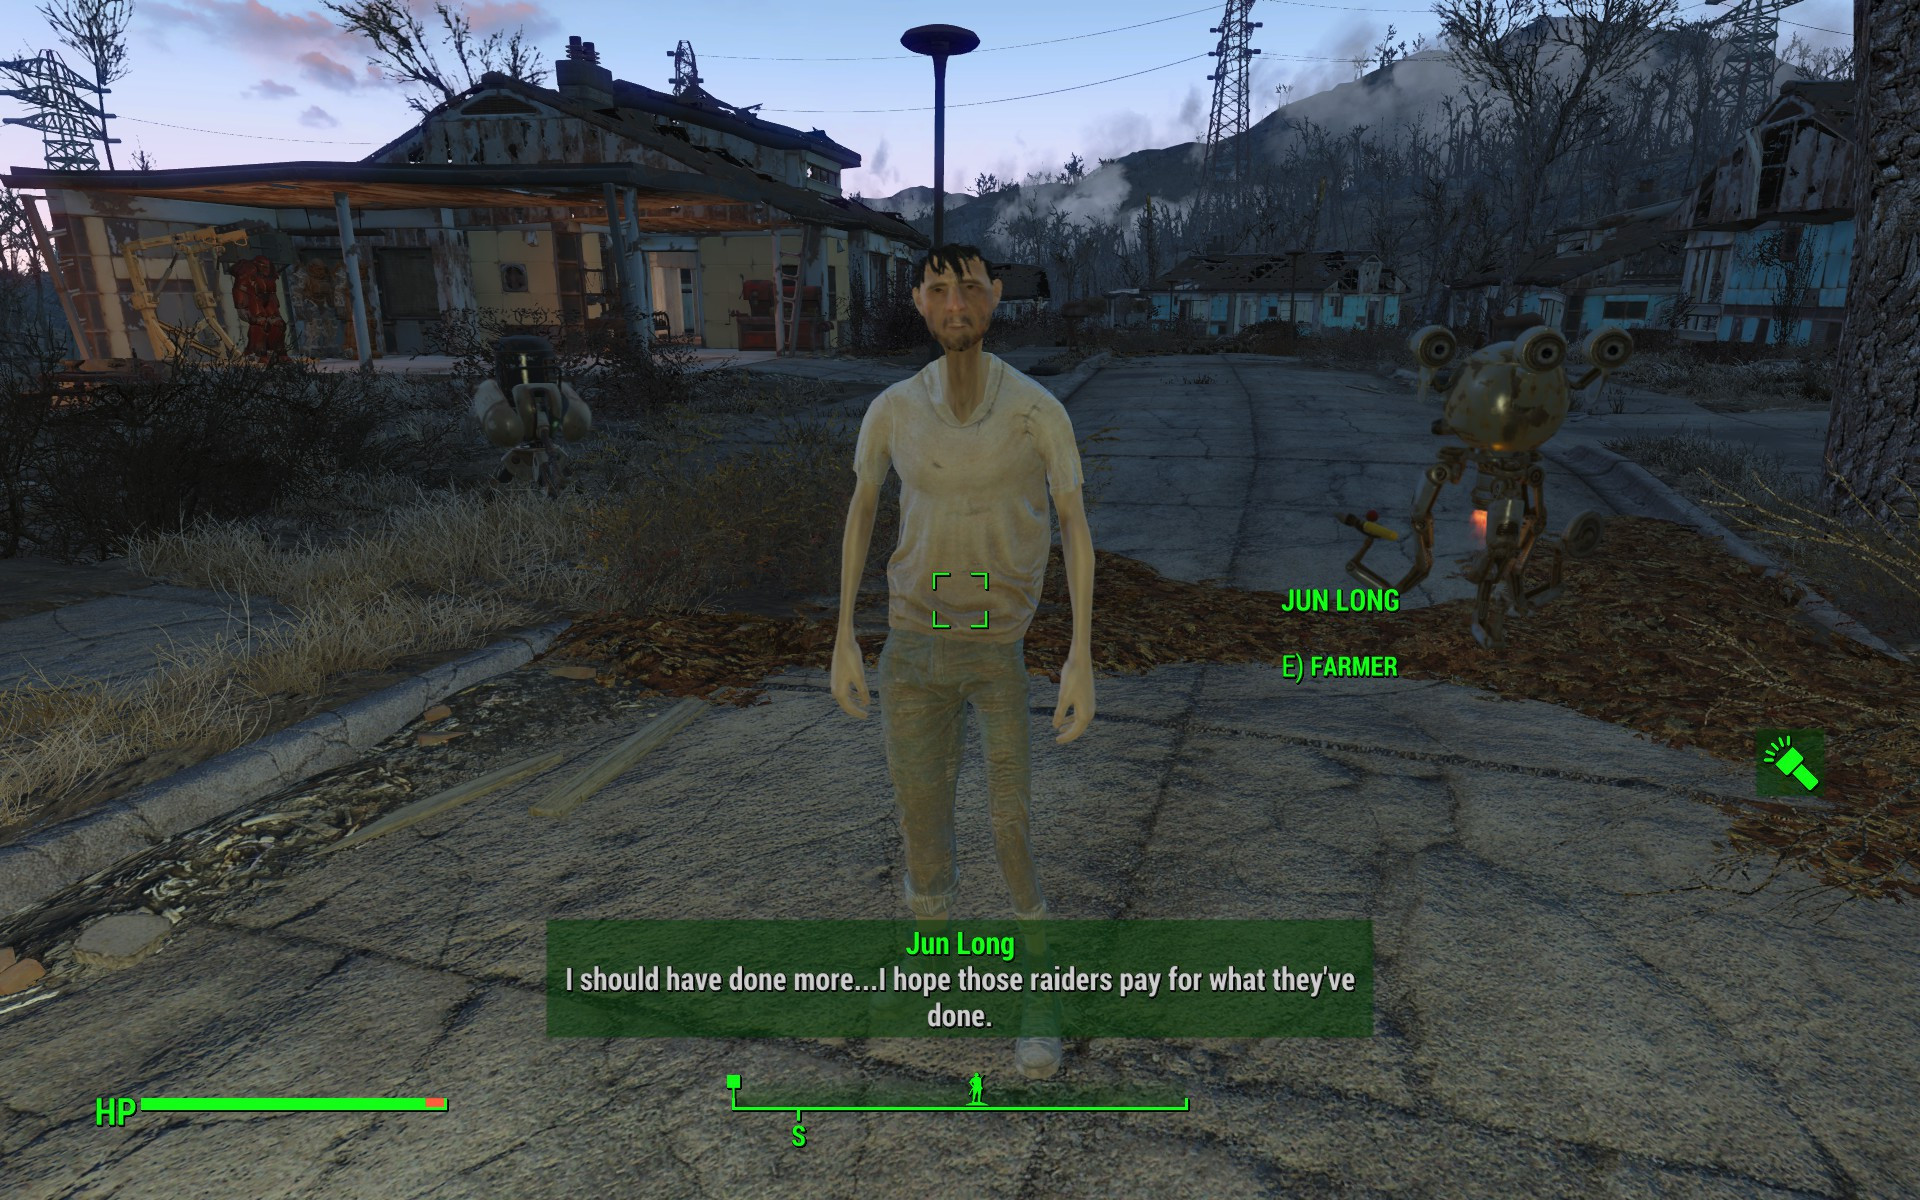 What mod is causing this deformity? :: Fallout 4 General